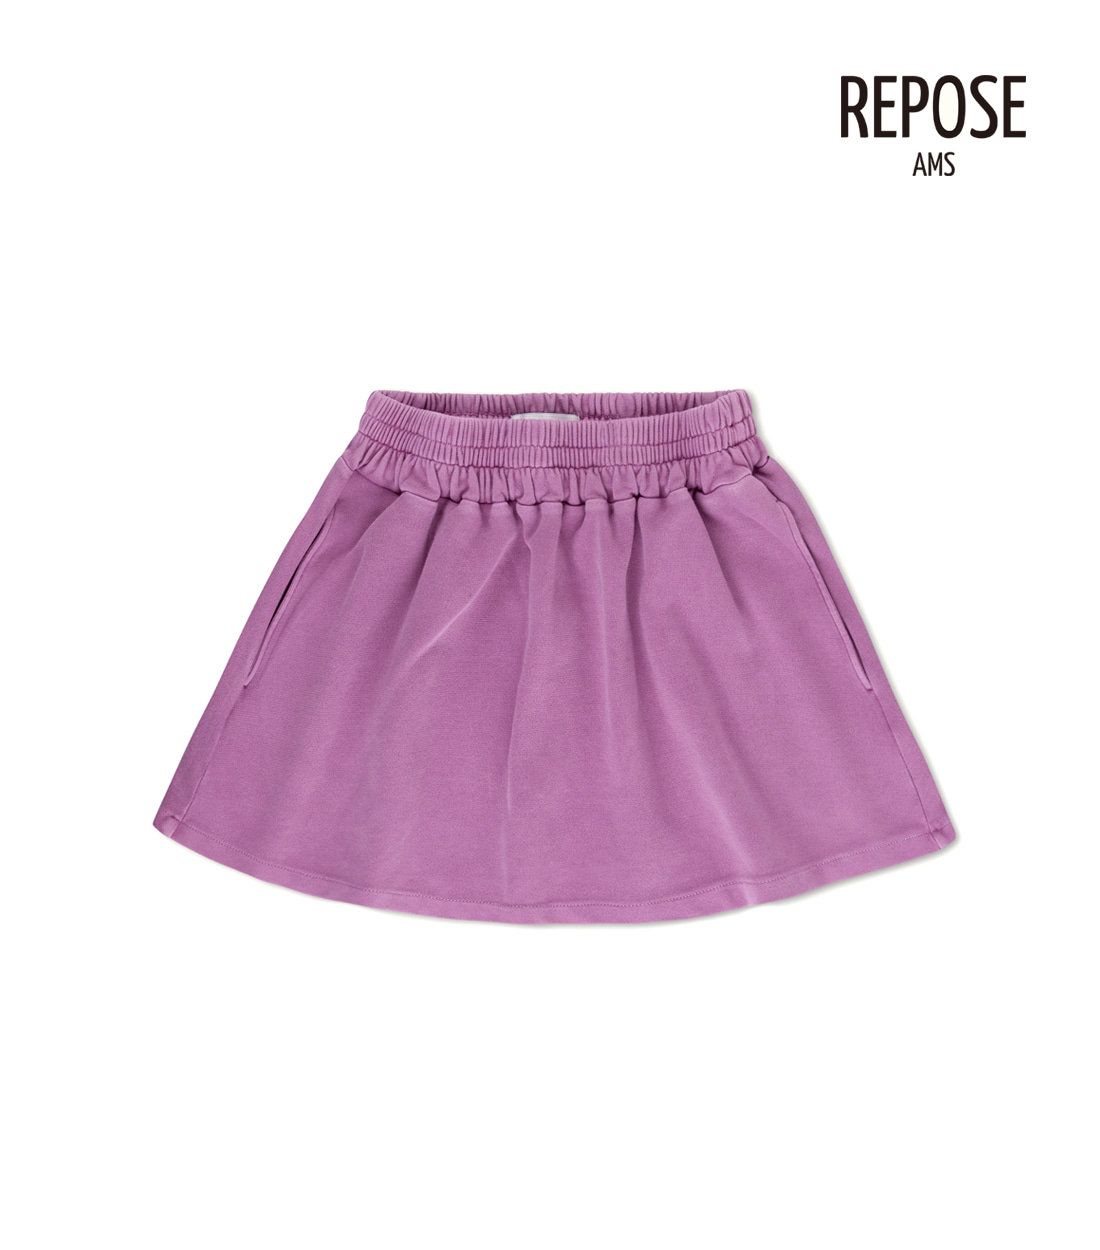 리포즈암스 SWEAT SKIRT / LILAC